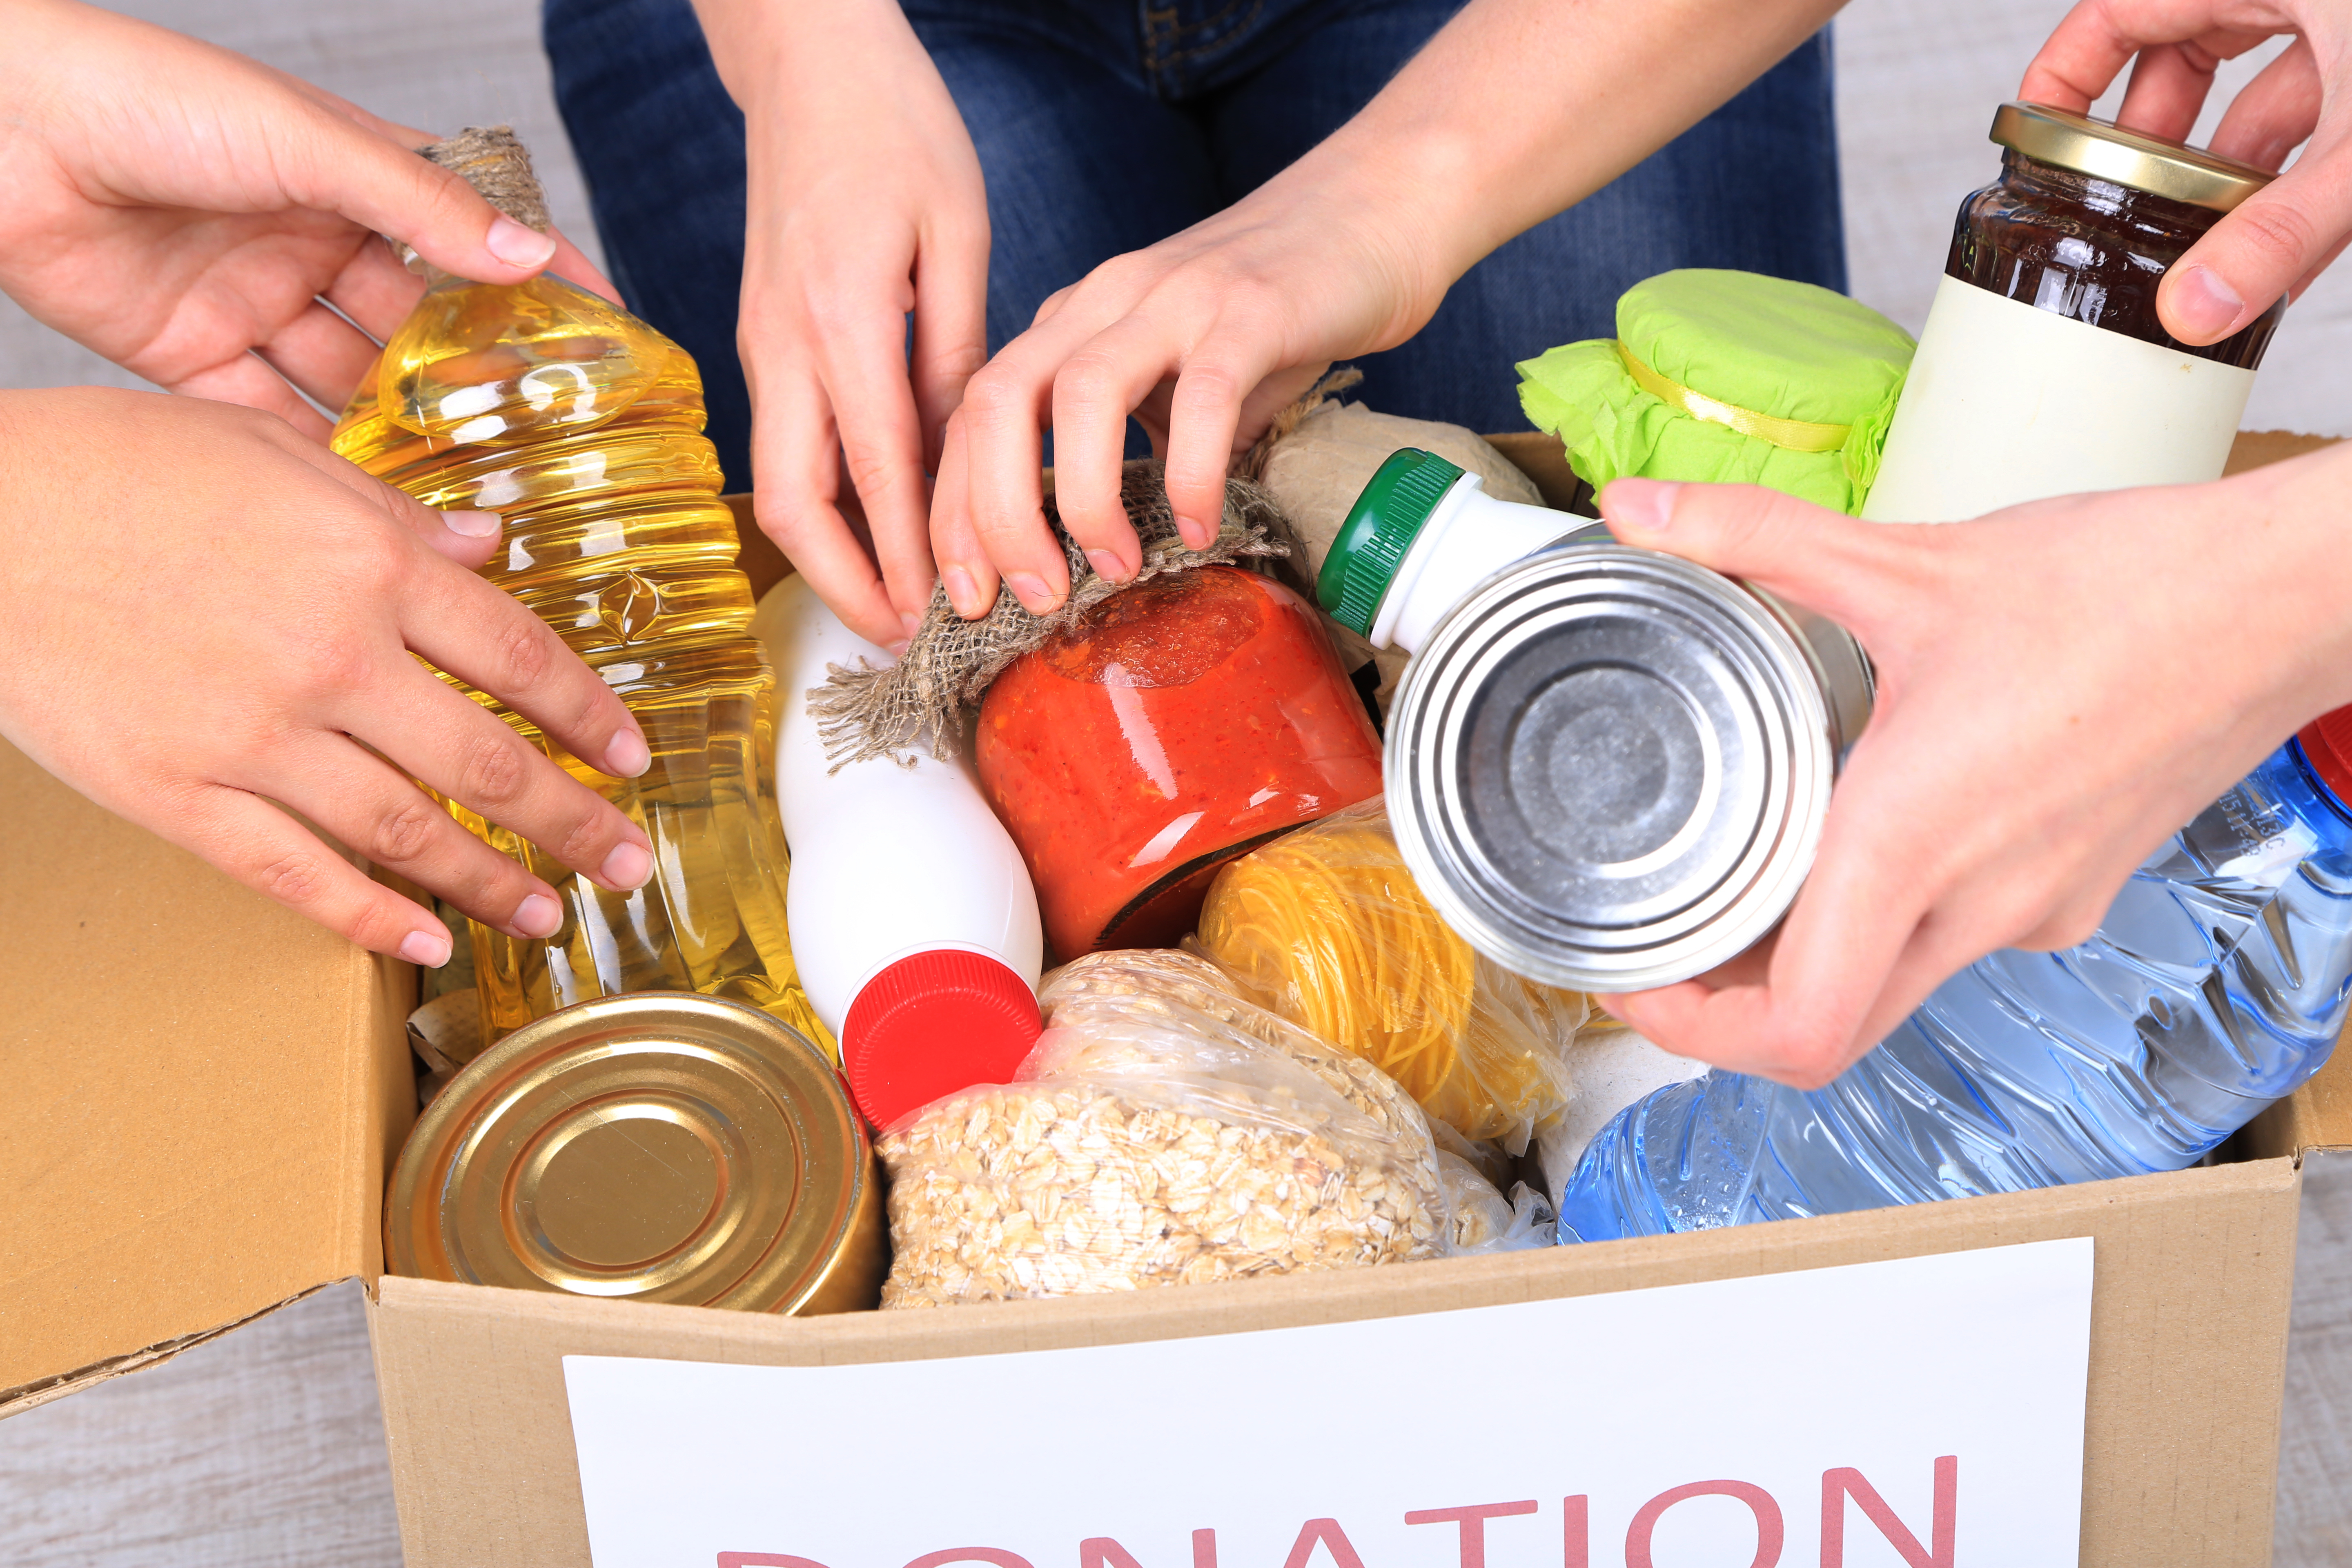 Watch How to Donate Food video